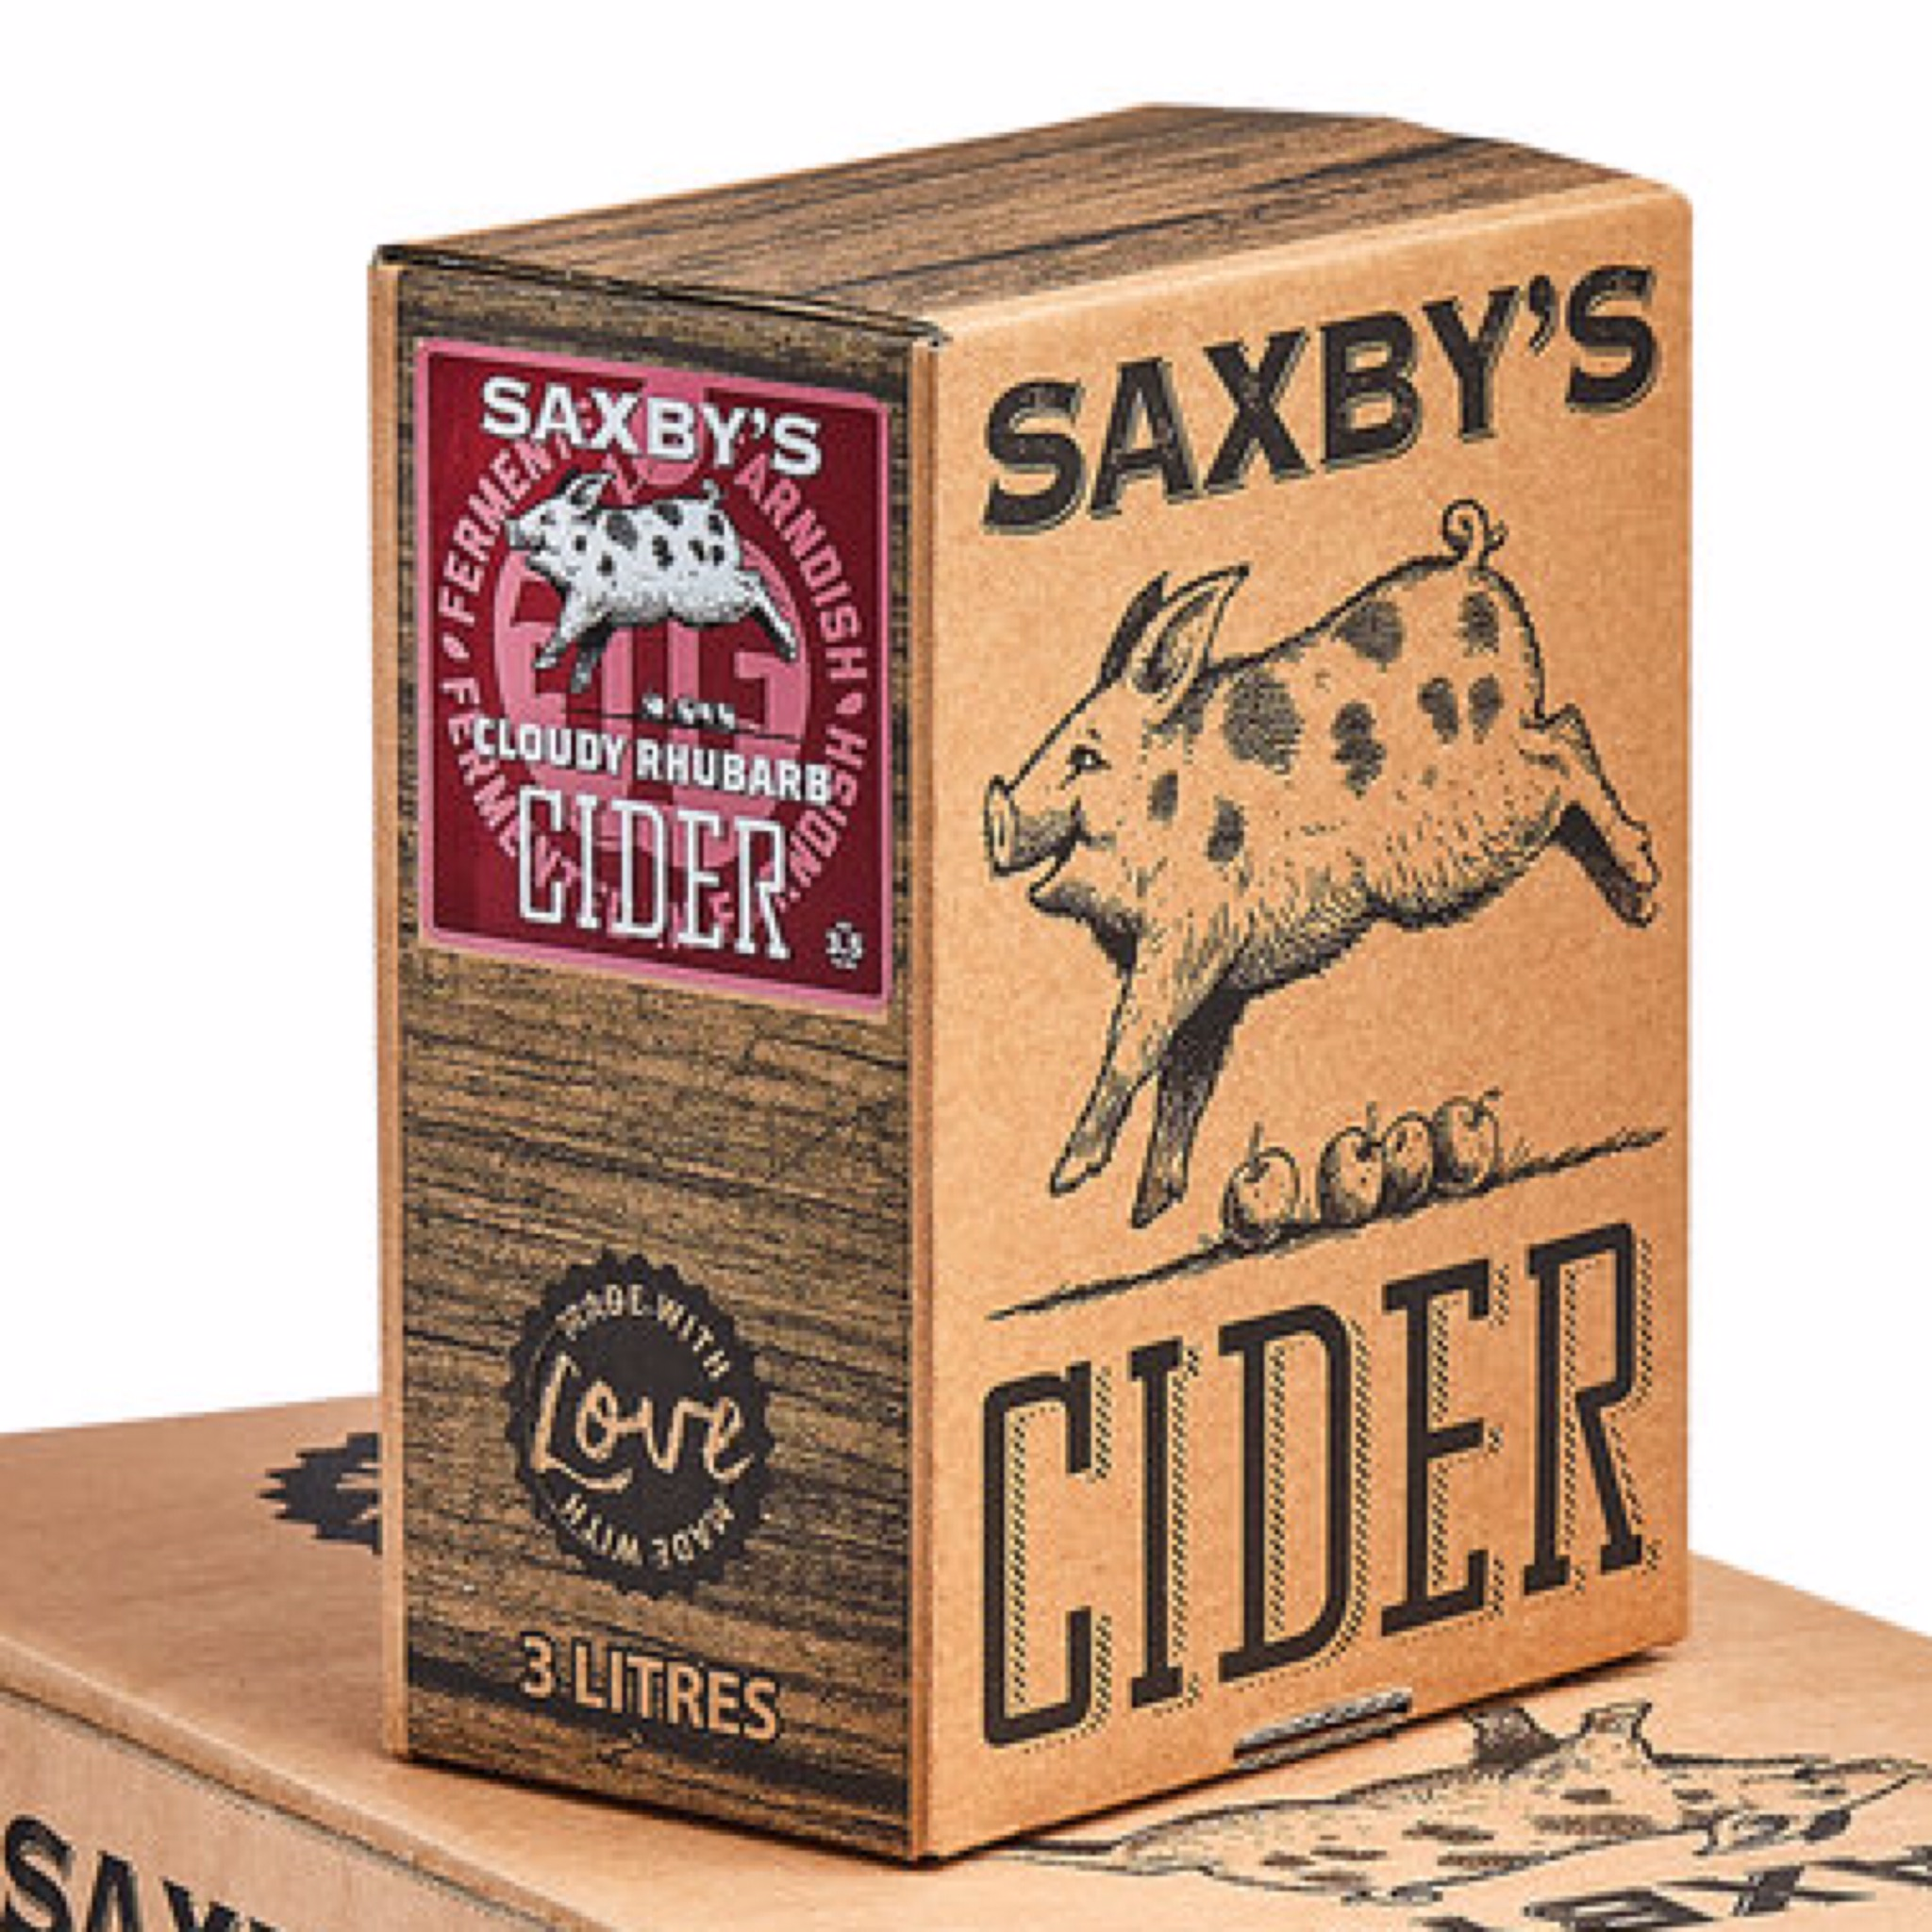 Saxby's Rhbarb Cider 3.5% 500ml & 3litre Bag In The Box